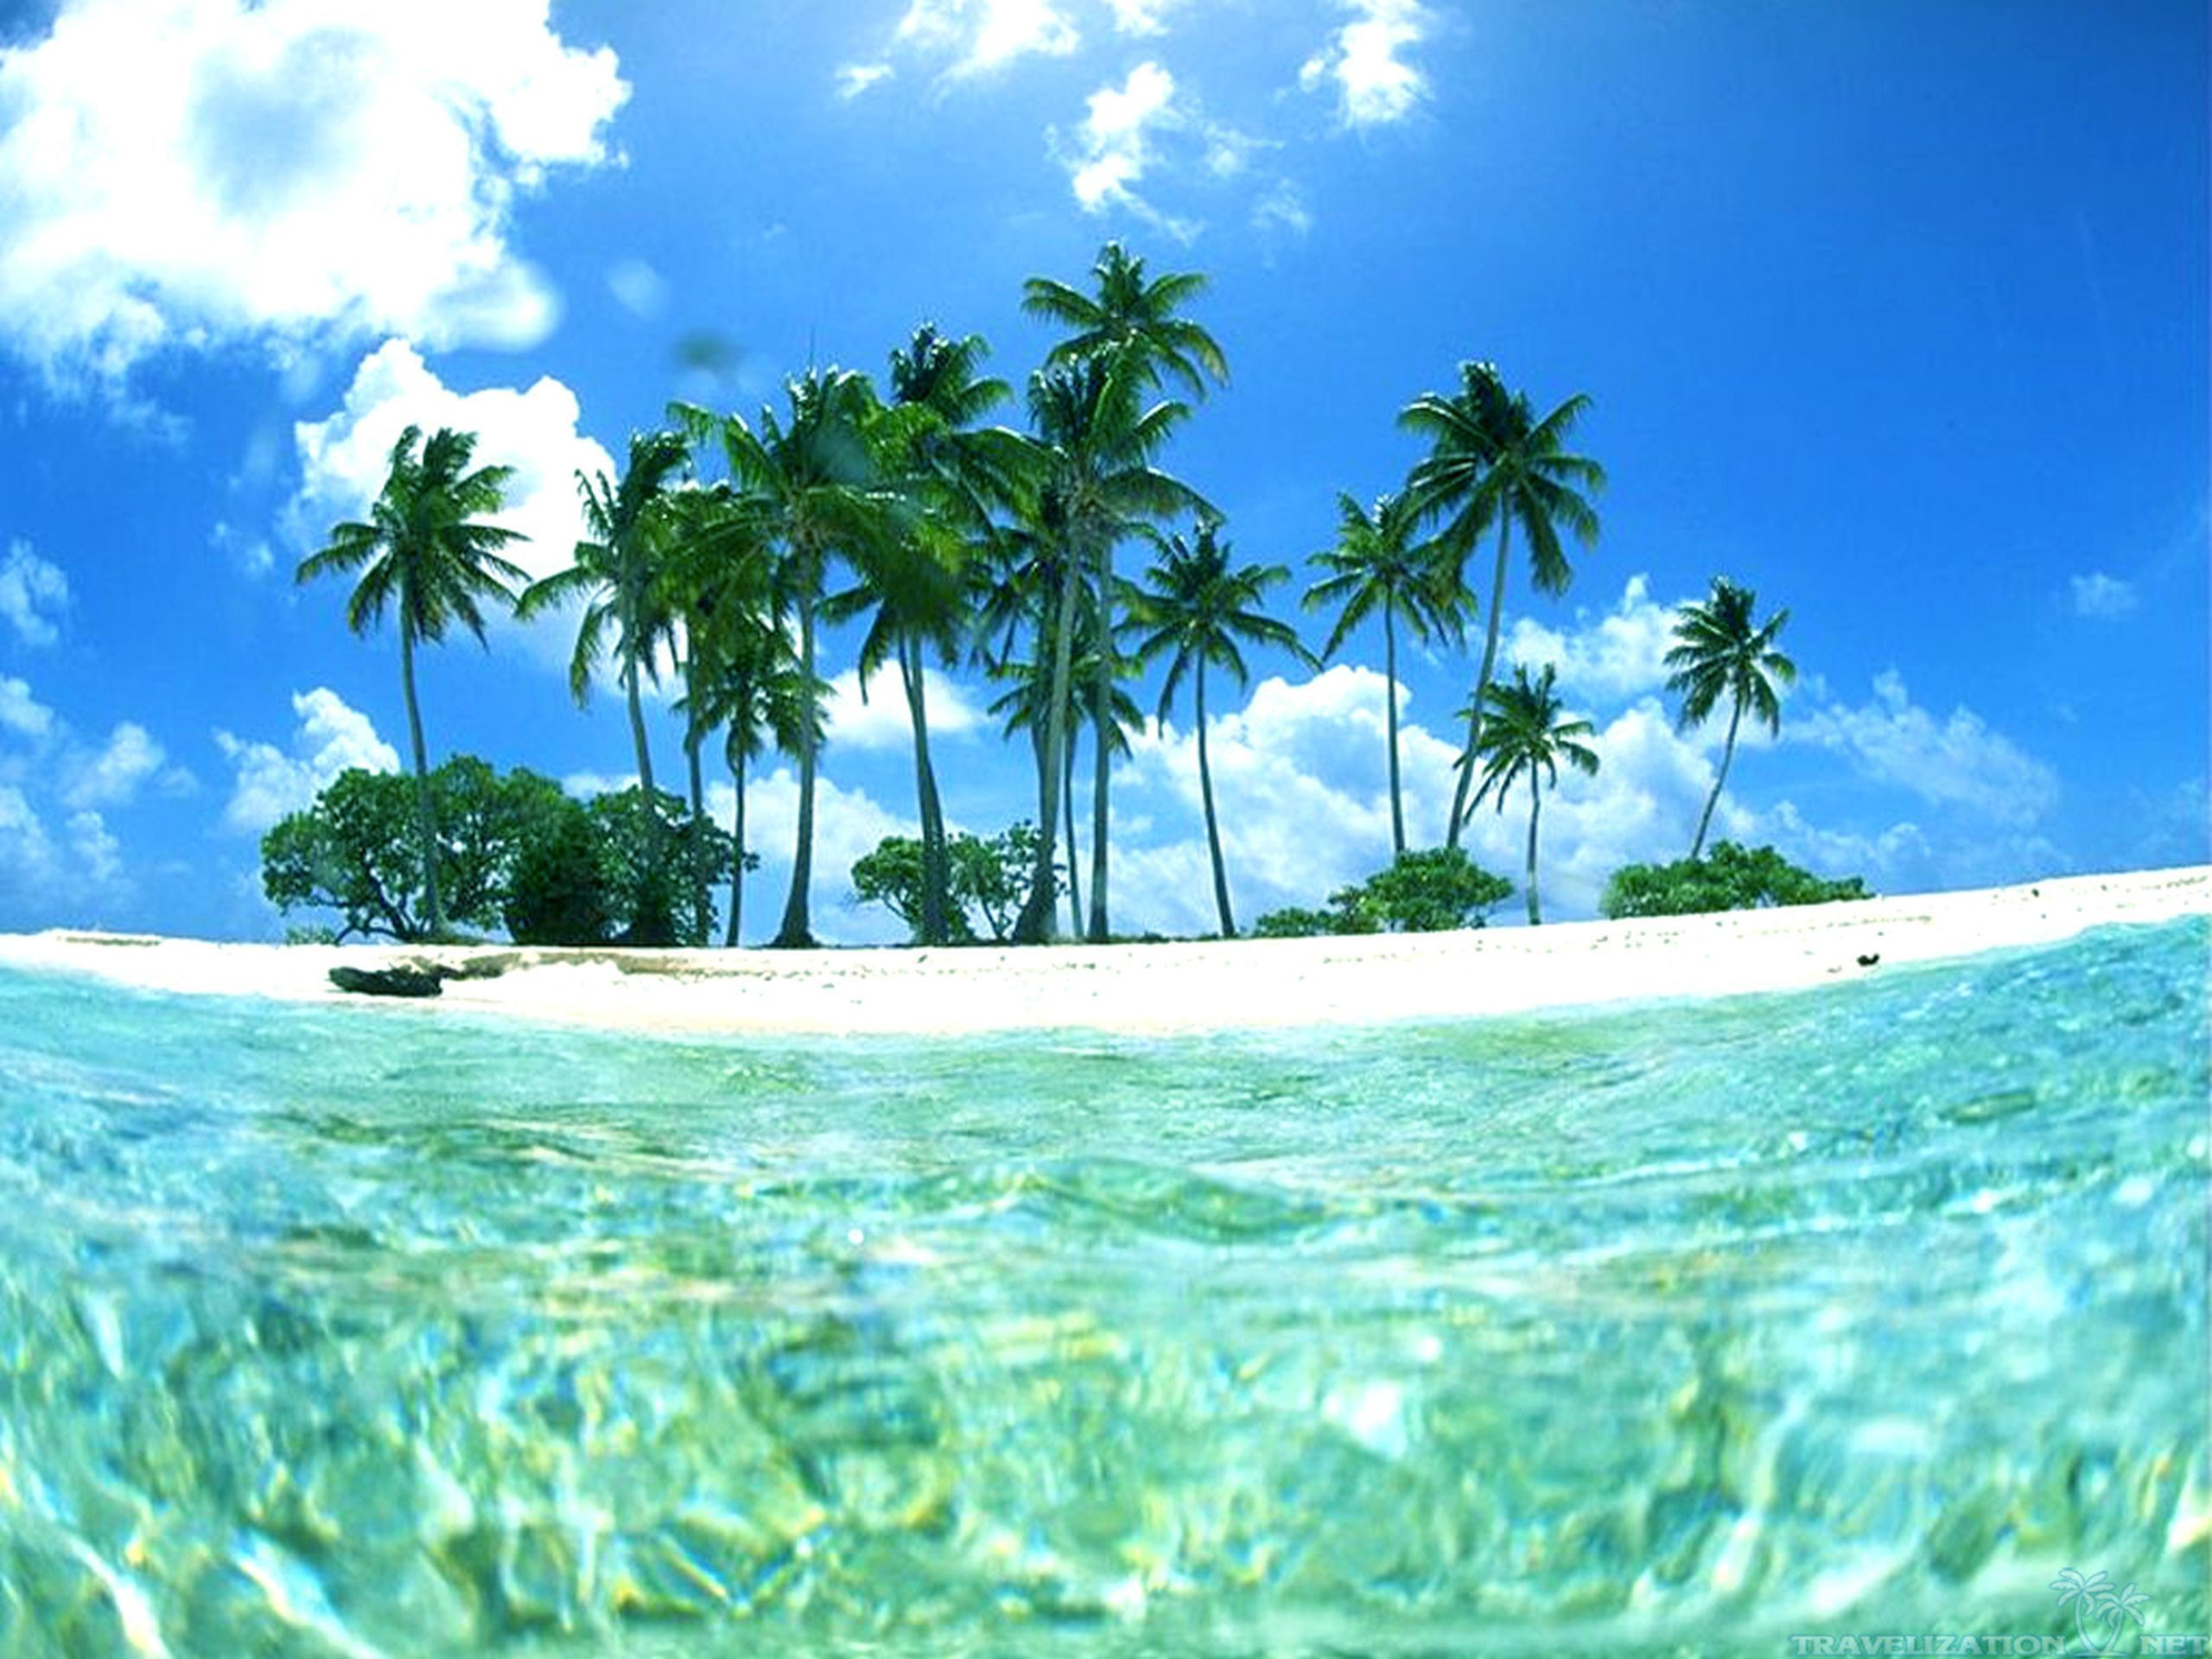 2560x1920 Tropical Beaches Hd Background Wallpaper 51 HD Wallpapers #7279